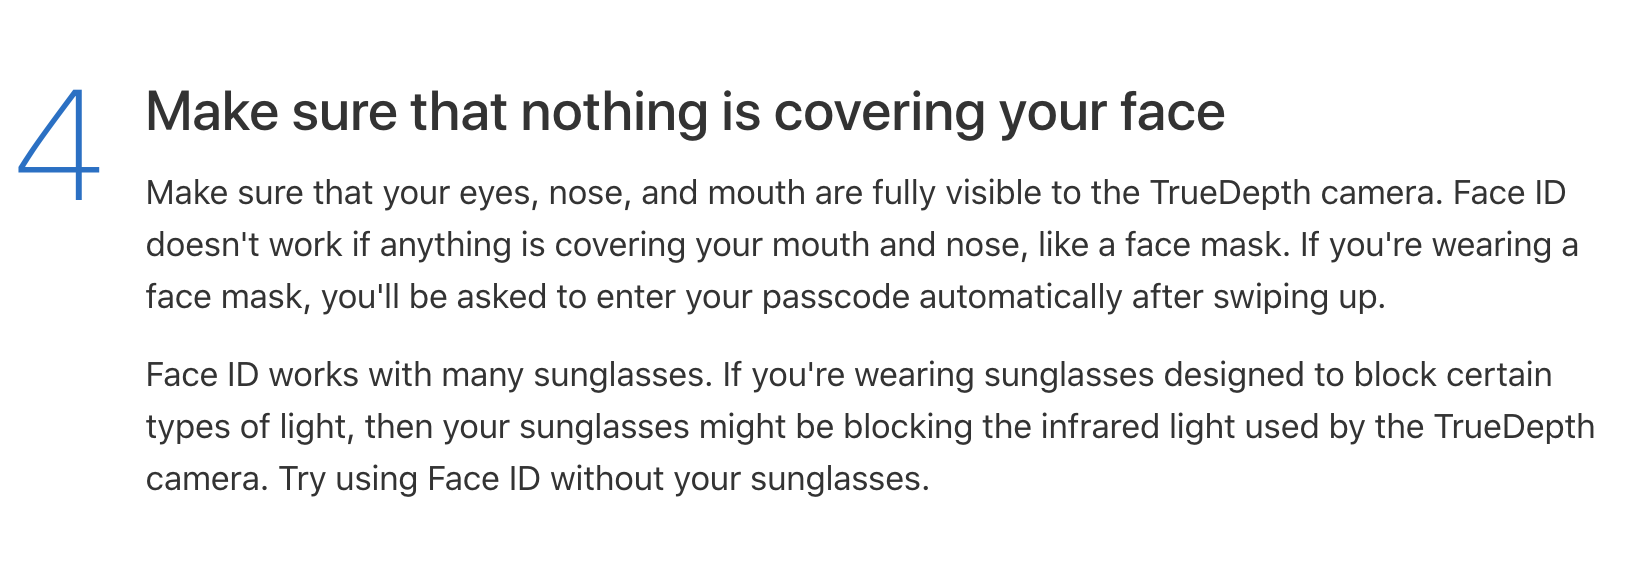 Apple Support for Face ID